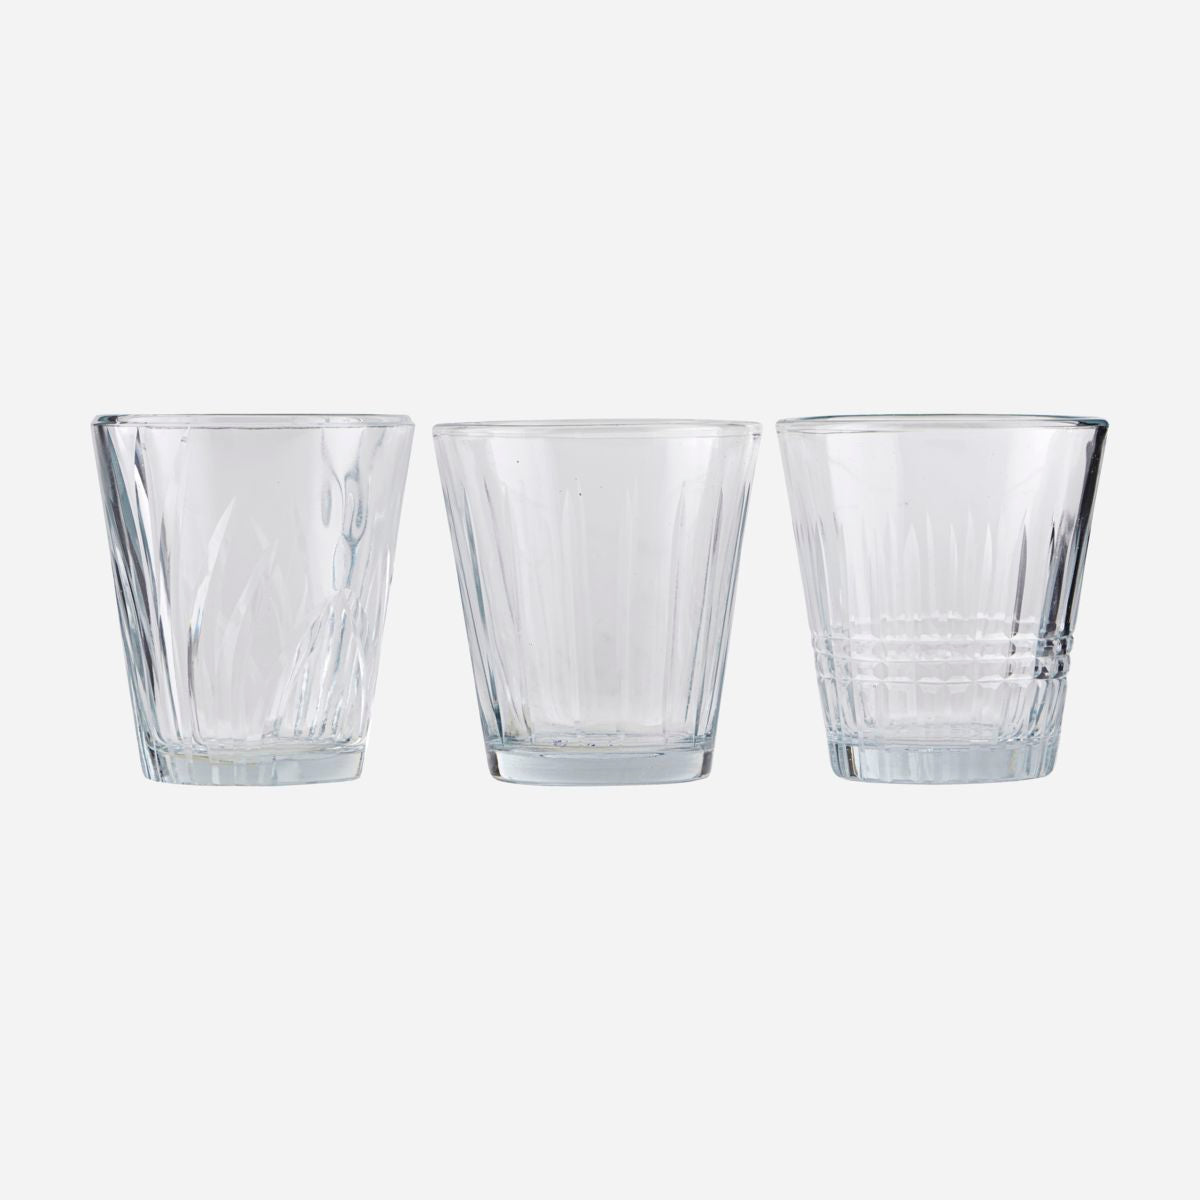 Image of   Glass, Vintage, Clear, 6 pcs/pack, Set of 3 designs